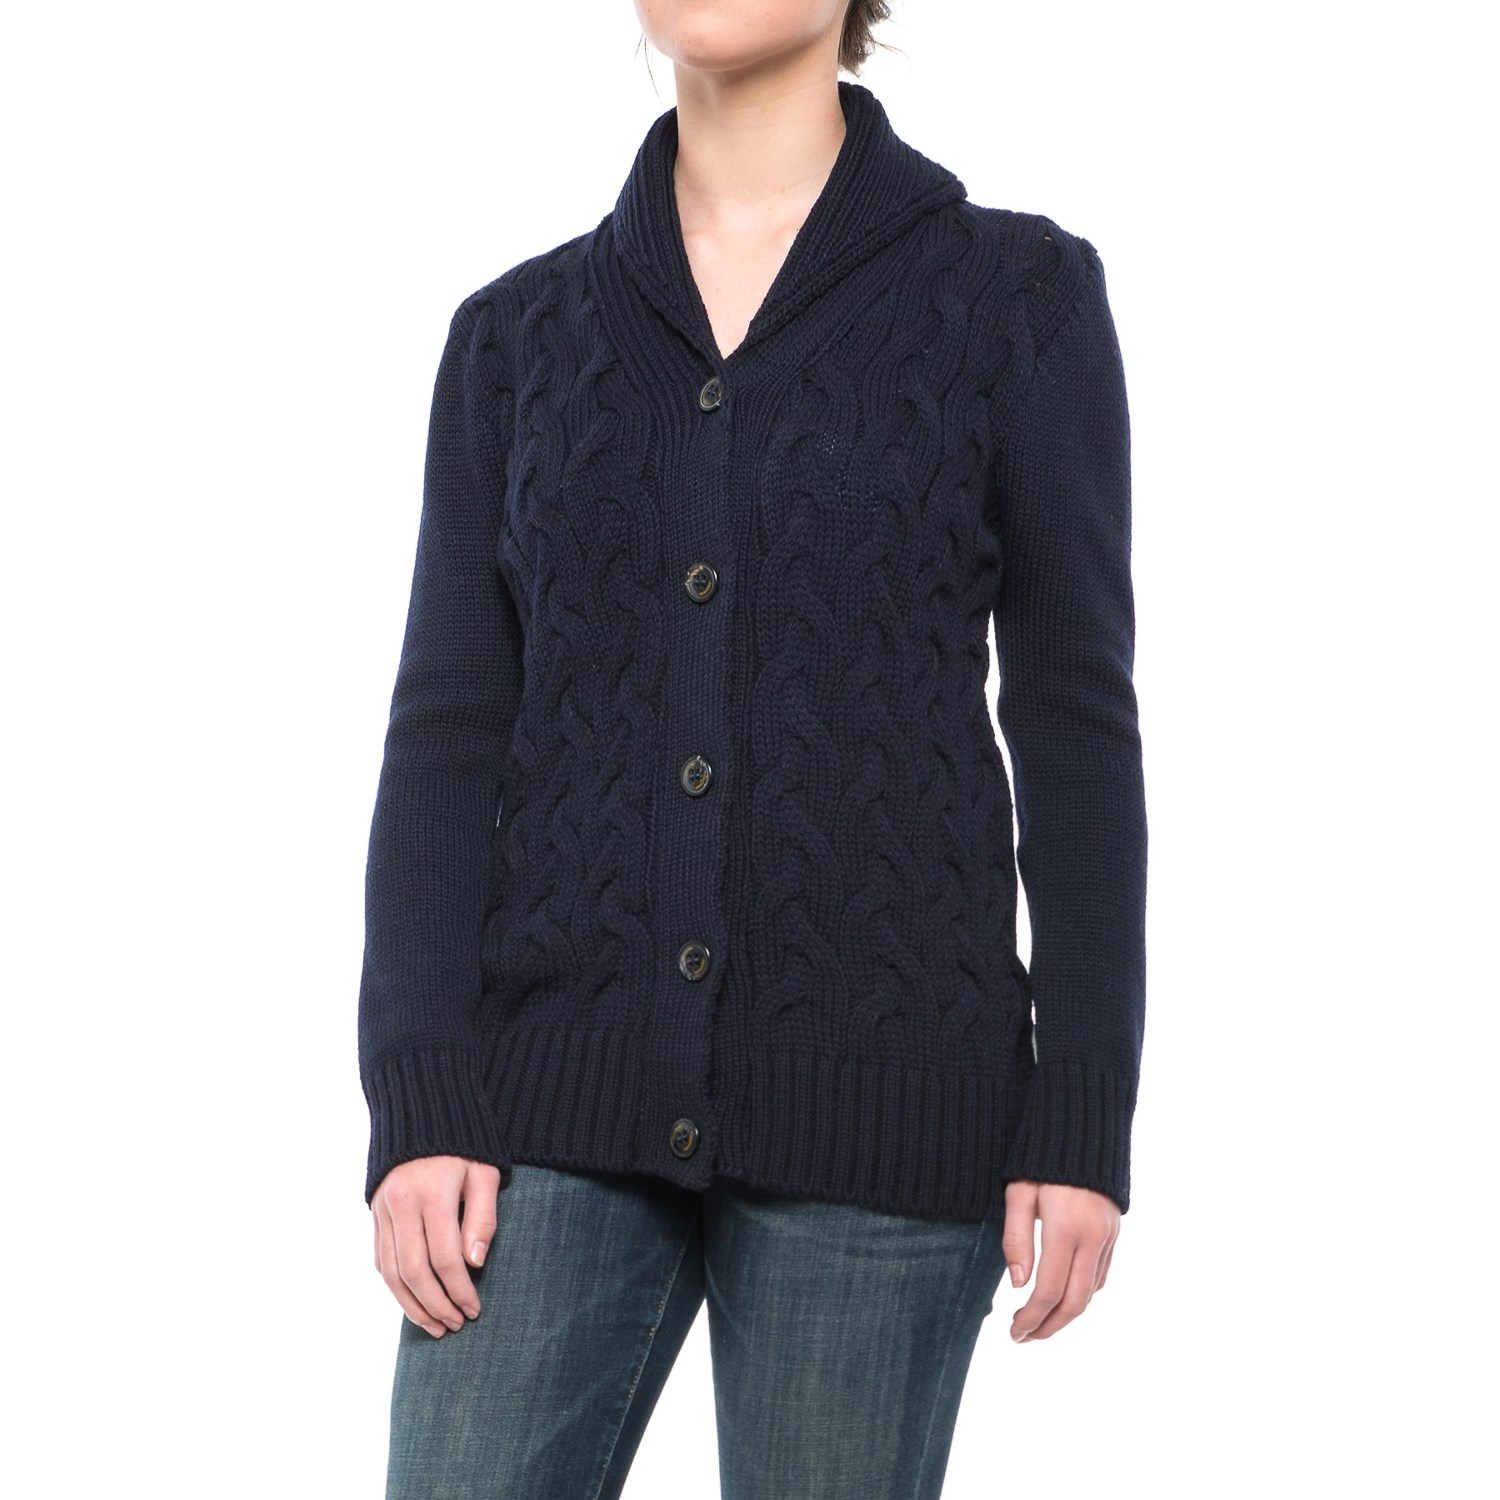 Peregrine by J.G. Glover Corden Shawl Cardigan Sweater (For Women ...